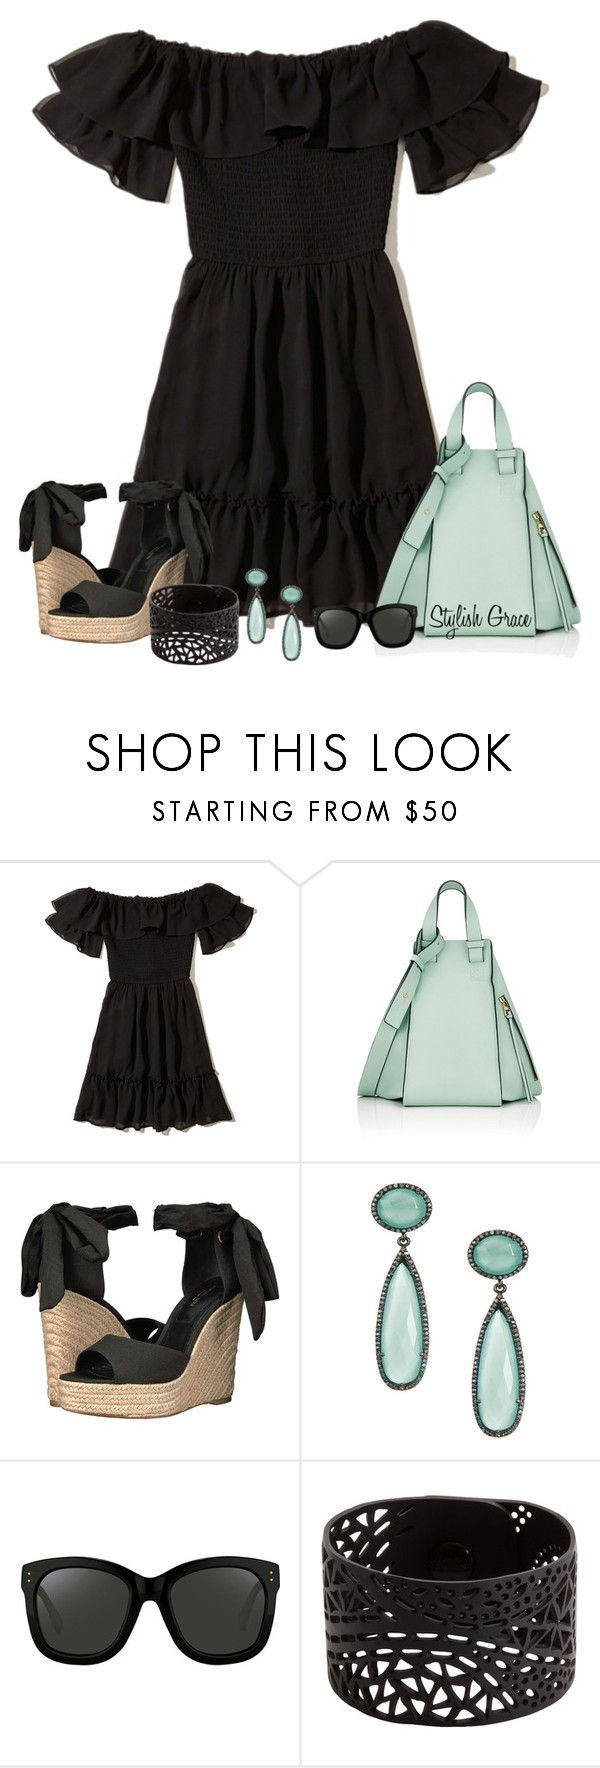 Ruffles & Mint by stylishgrace on Polyvore featuring Hollister Co., Michael Kors, Loewe, ADORNIA and Linda Farrow